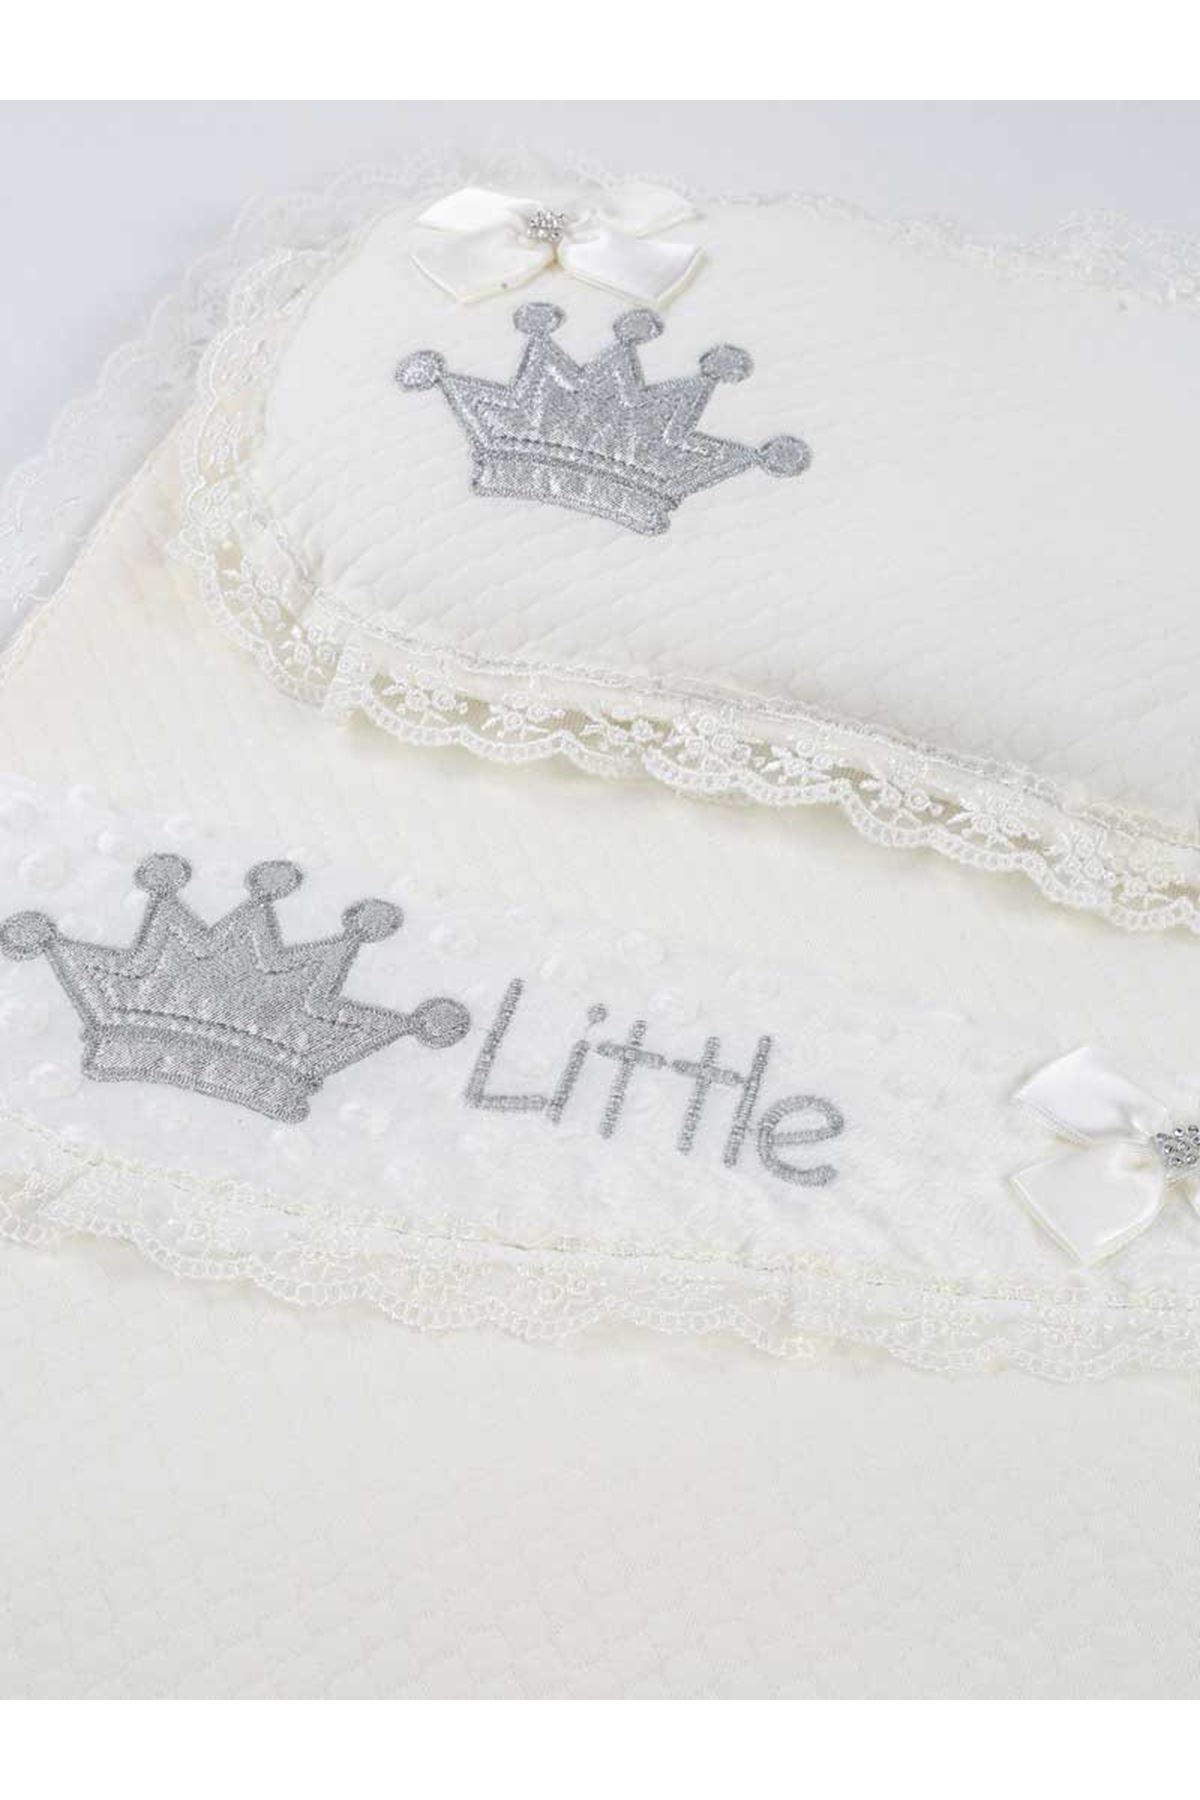 Unisex Baby White Swaddle Bottom Opening Set Newborn Cotton King Queen Girl Boy Babies Male Clothes Comfortable Stroller Use